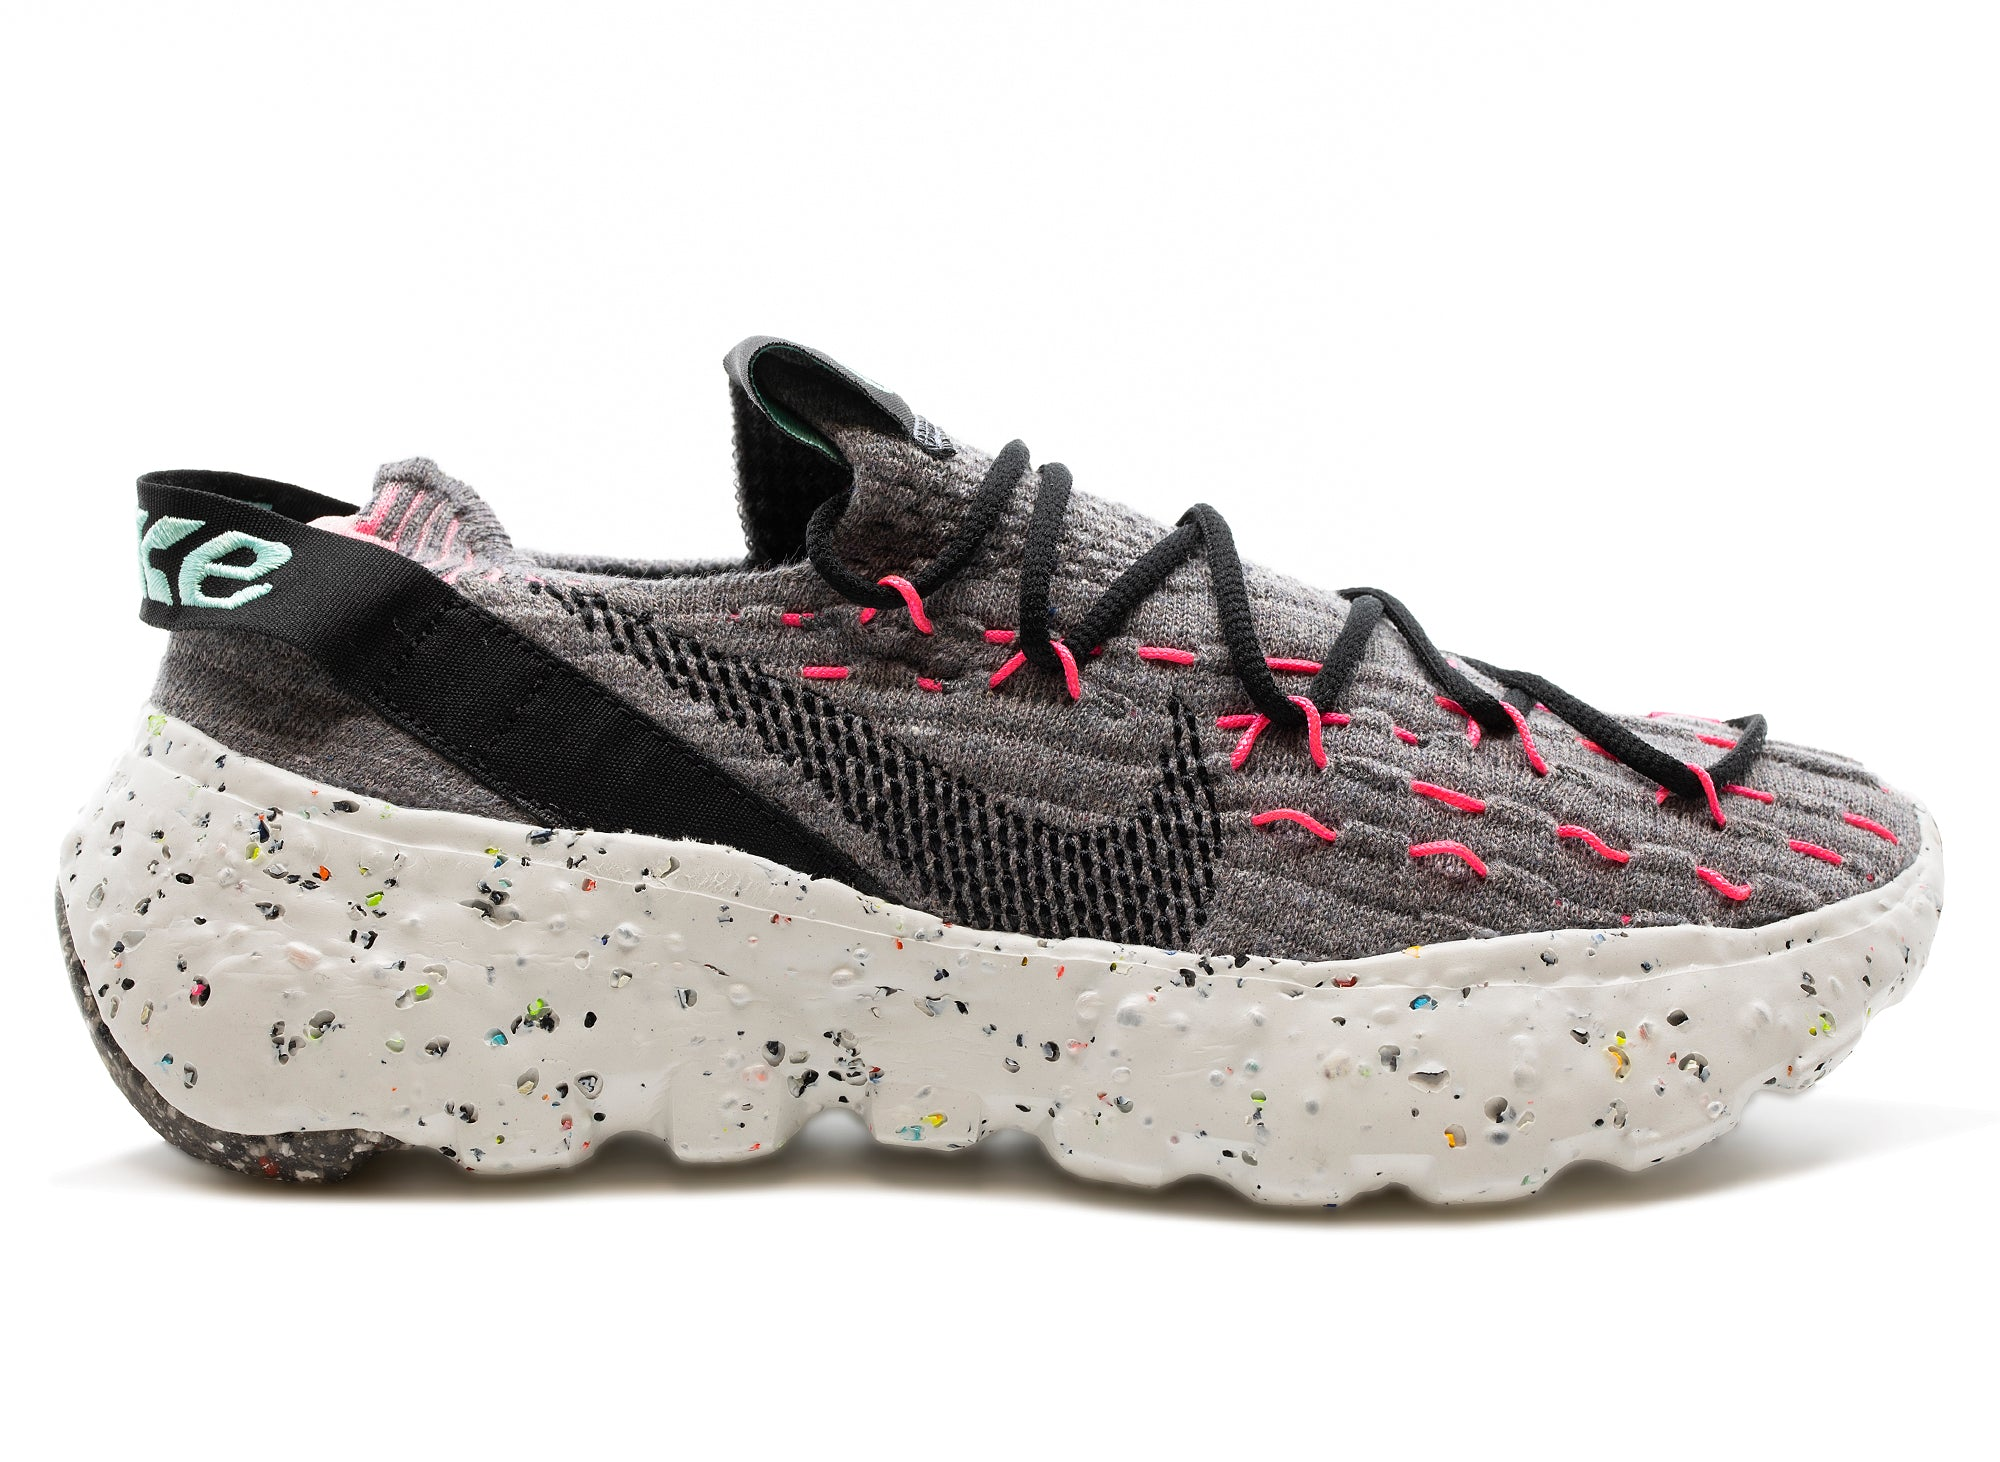 Women's Nike Space Hippie 04 xld